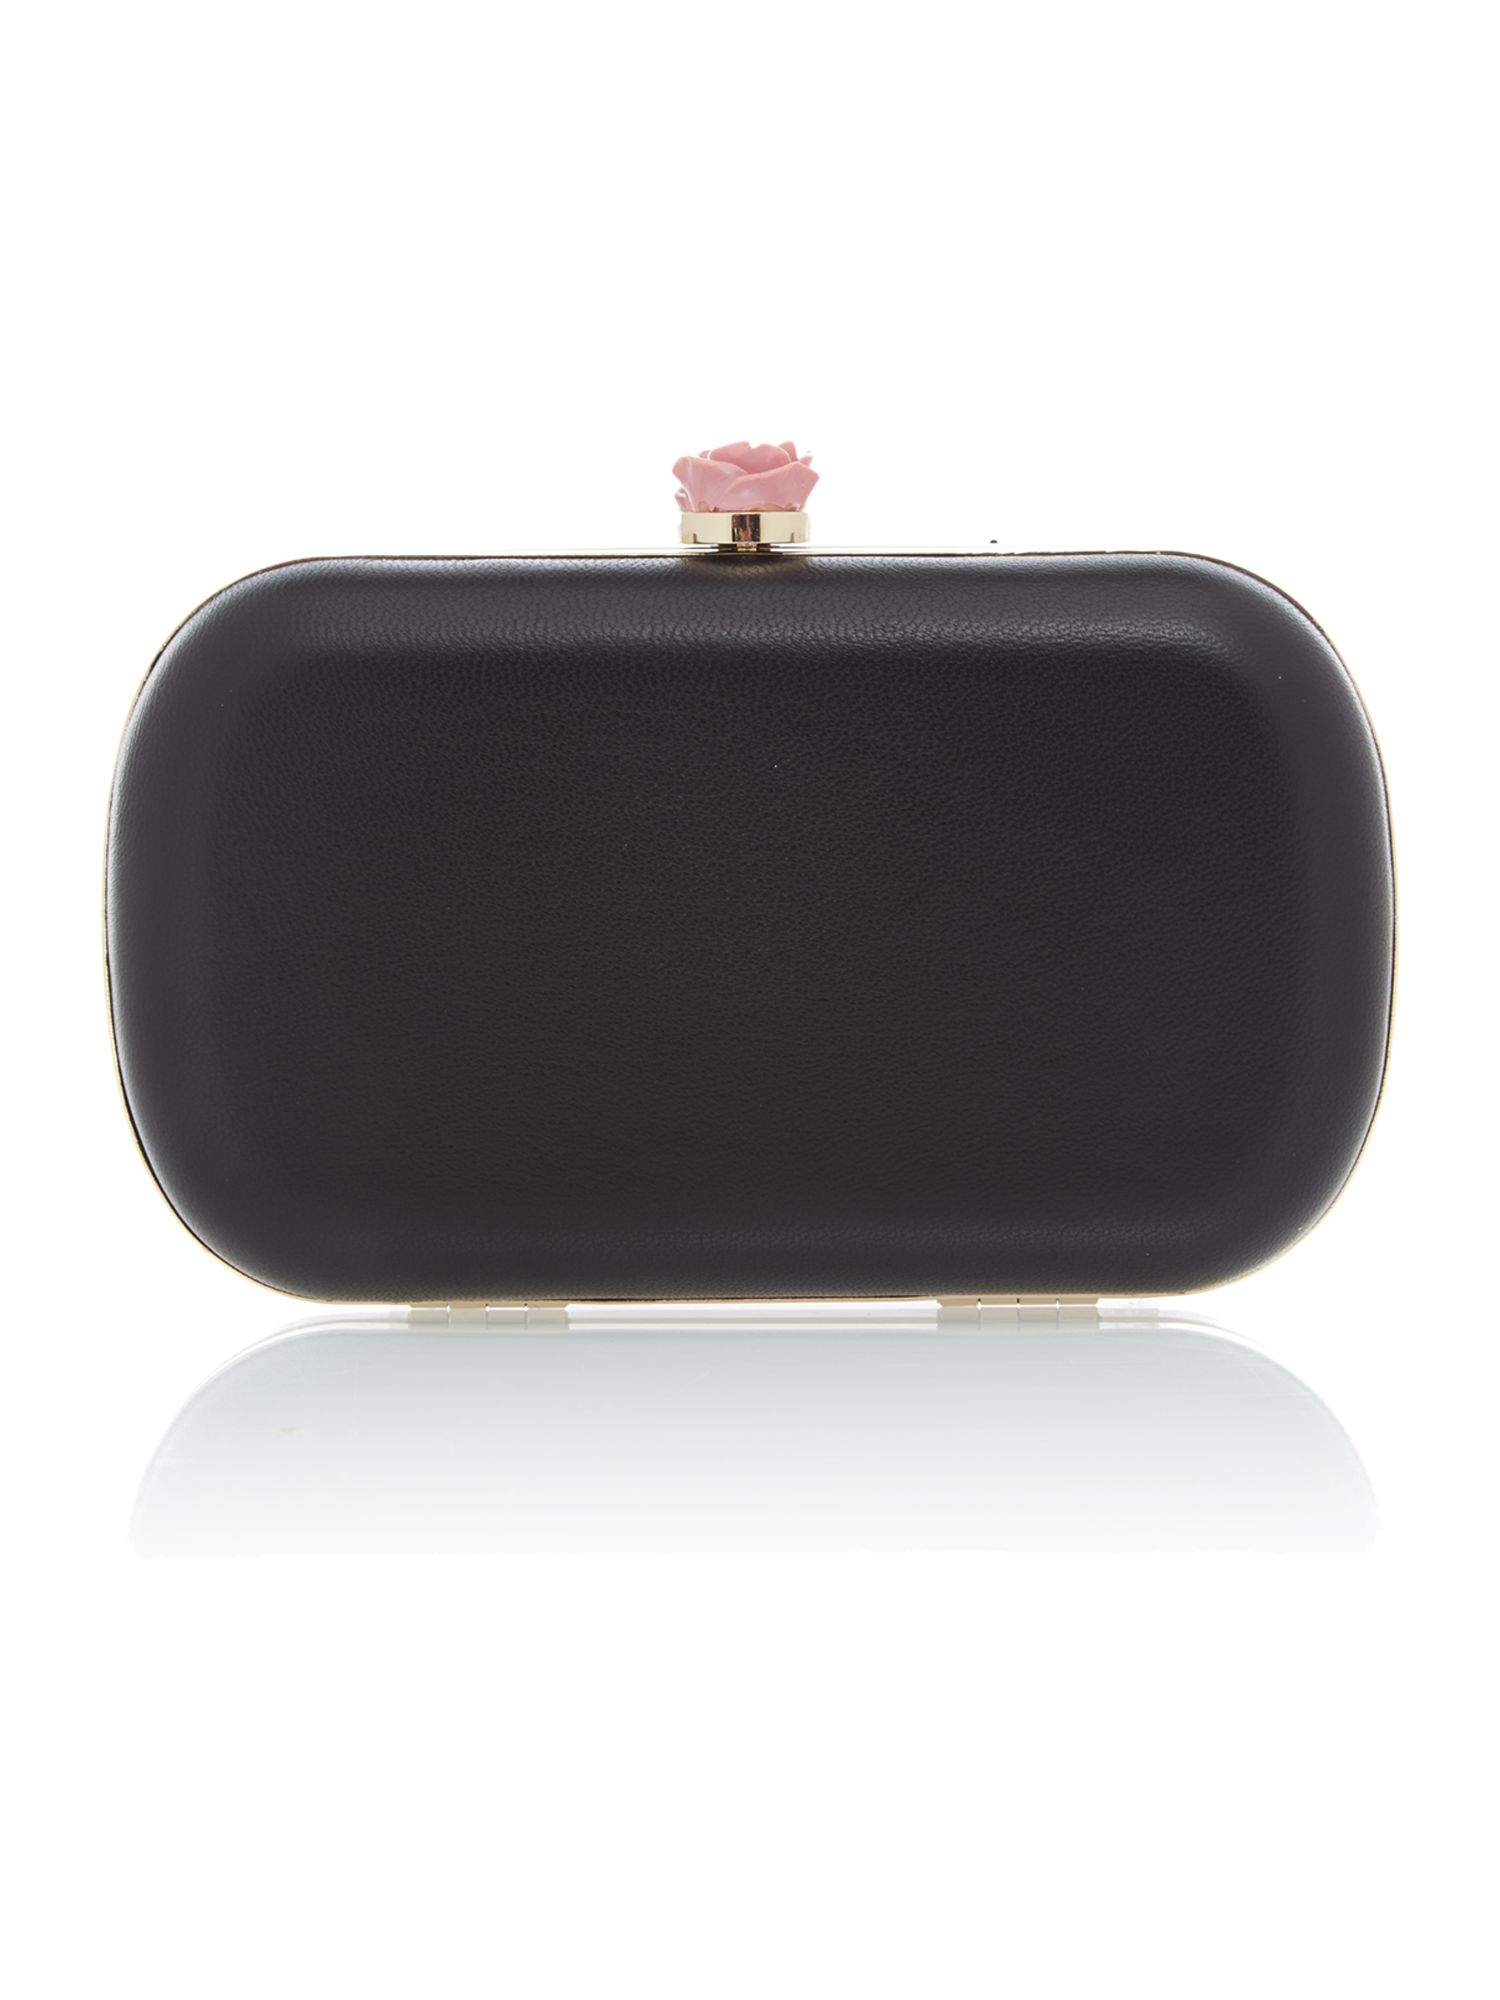 Minaudiere black clutch bag